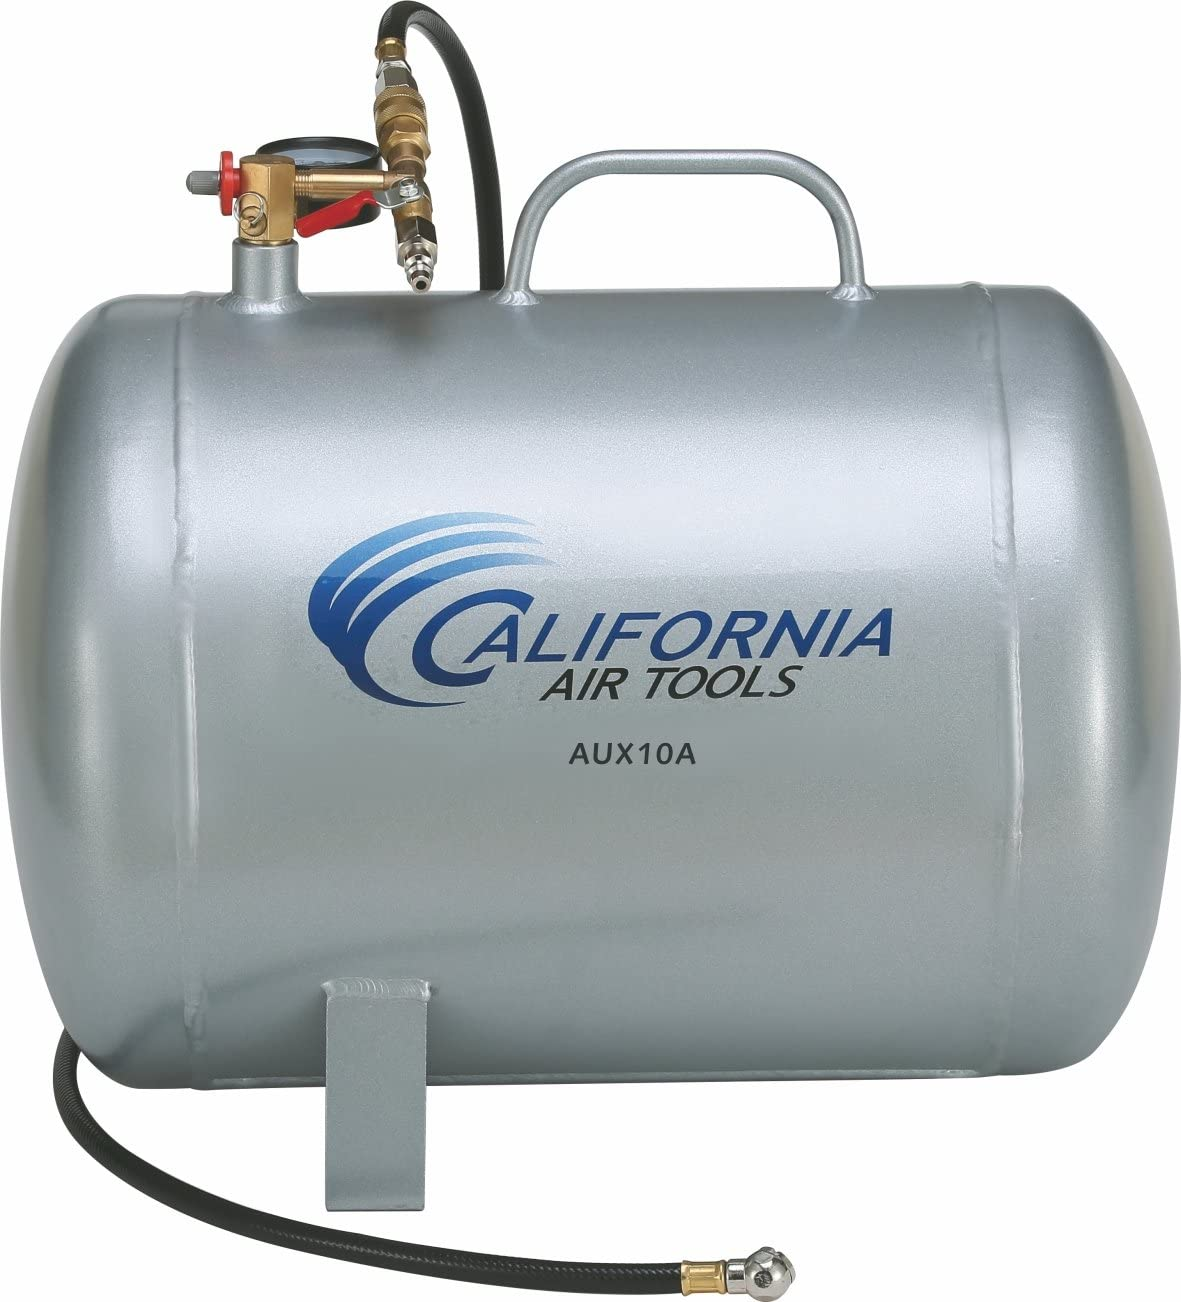 California Air Tools CAT-AUX10A Lightweight Portable Aluminum Air Tank